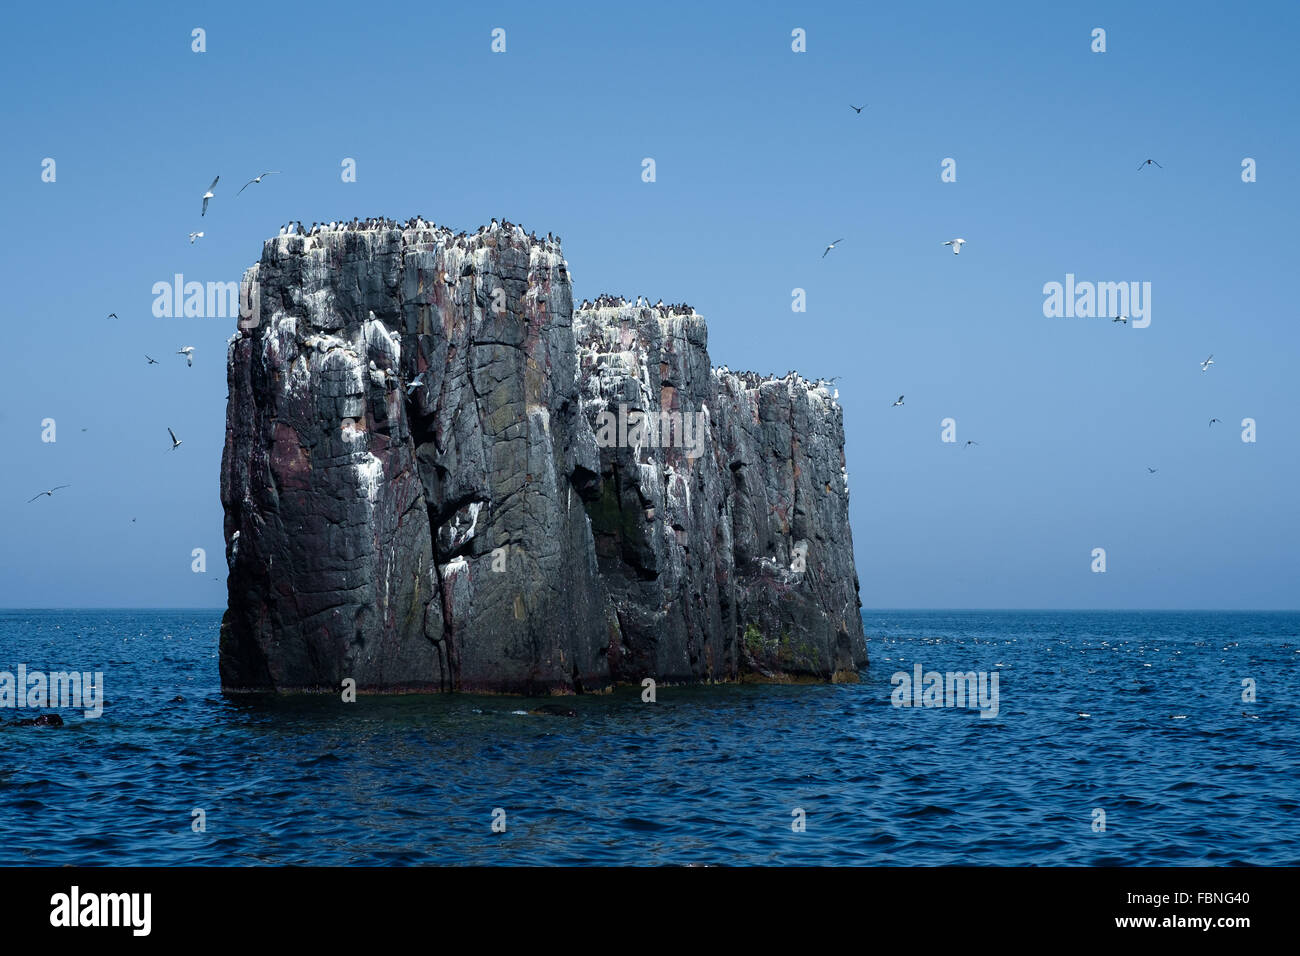 Seabirds on one of the Farne Islands off the coast of Northumerland, England. Stock Photo